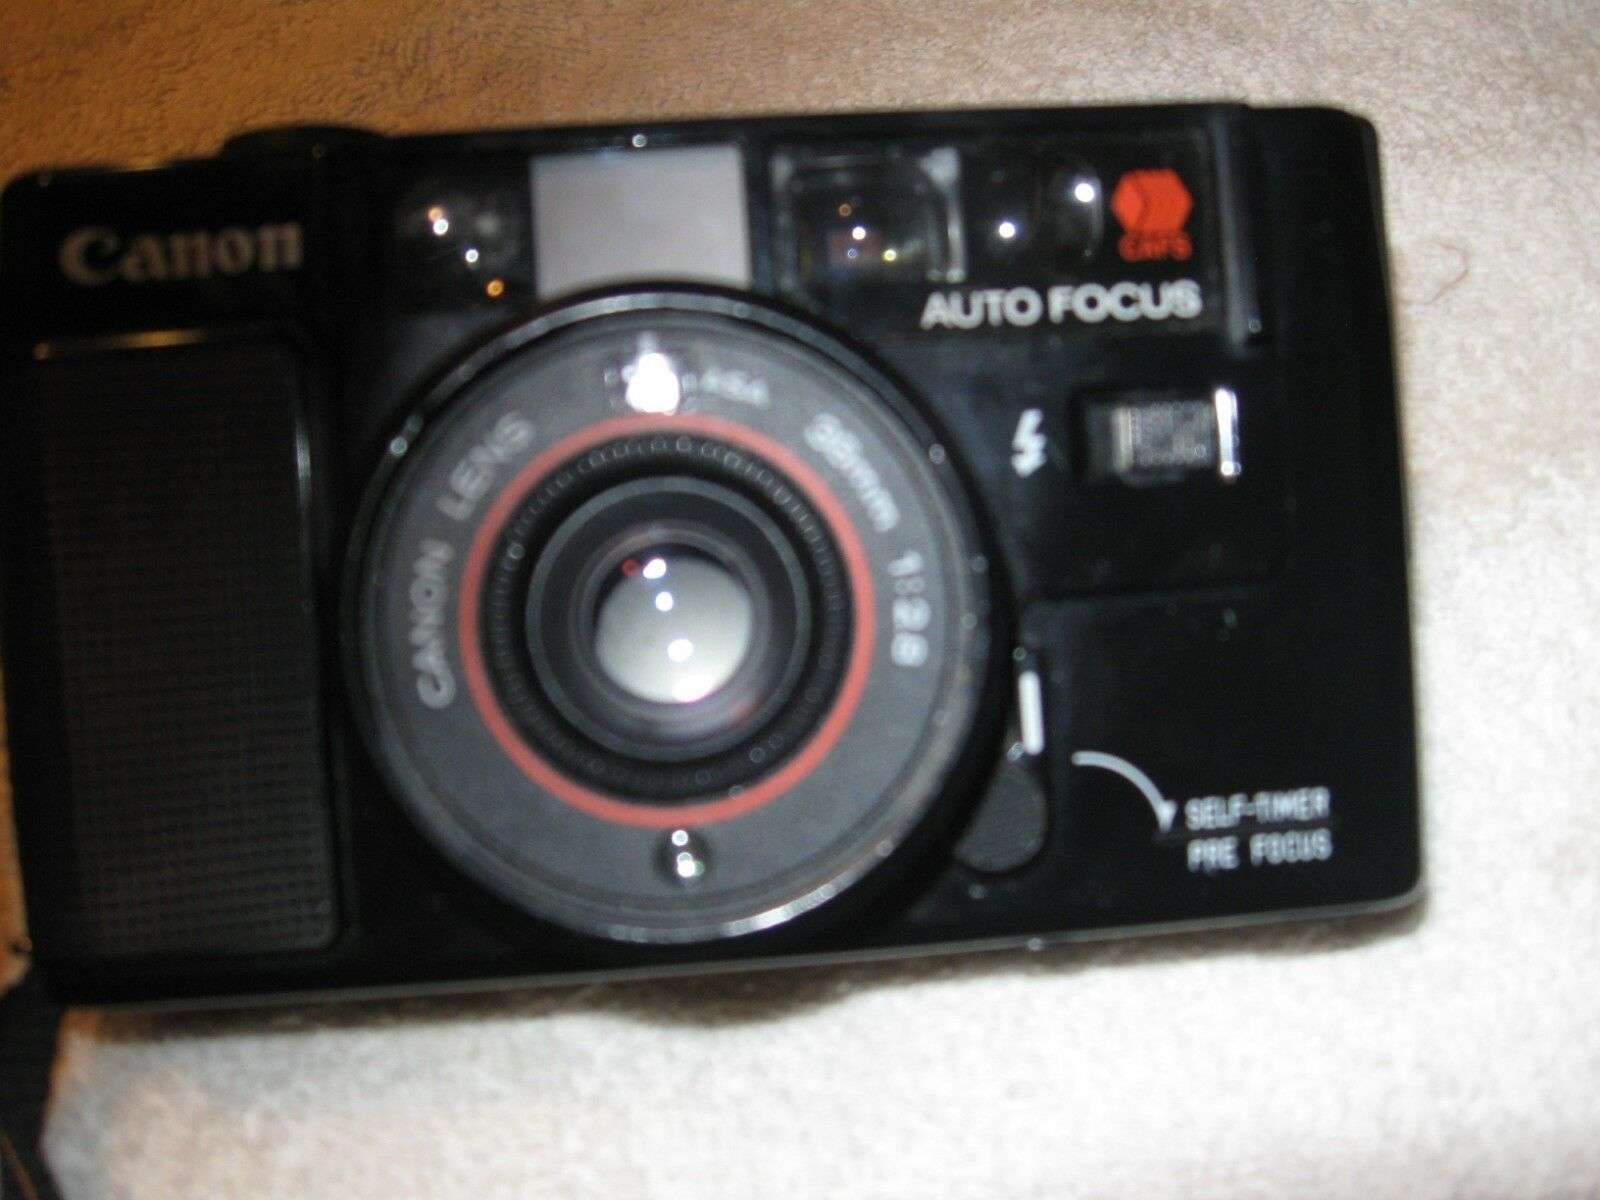 Canon AF35M 35mm Film Camera w/ 38mm f/2.8 Lens